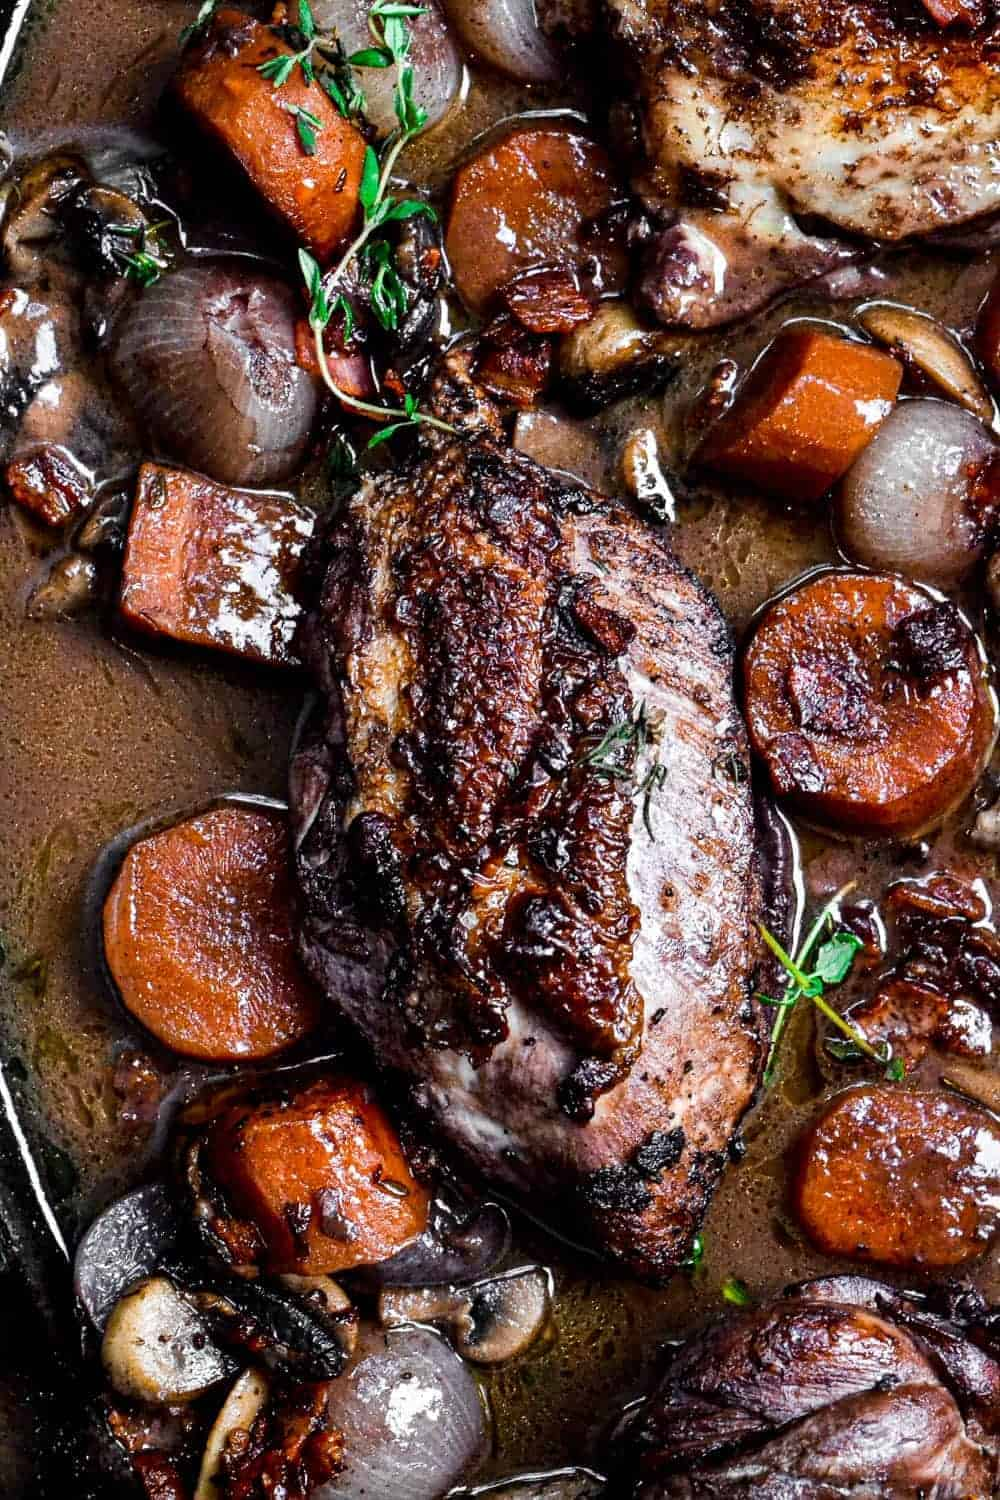 Close up of a cooked chicken breast in red wine sauce